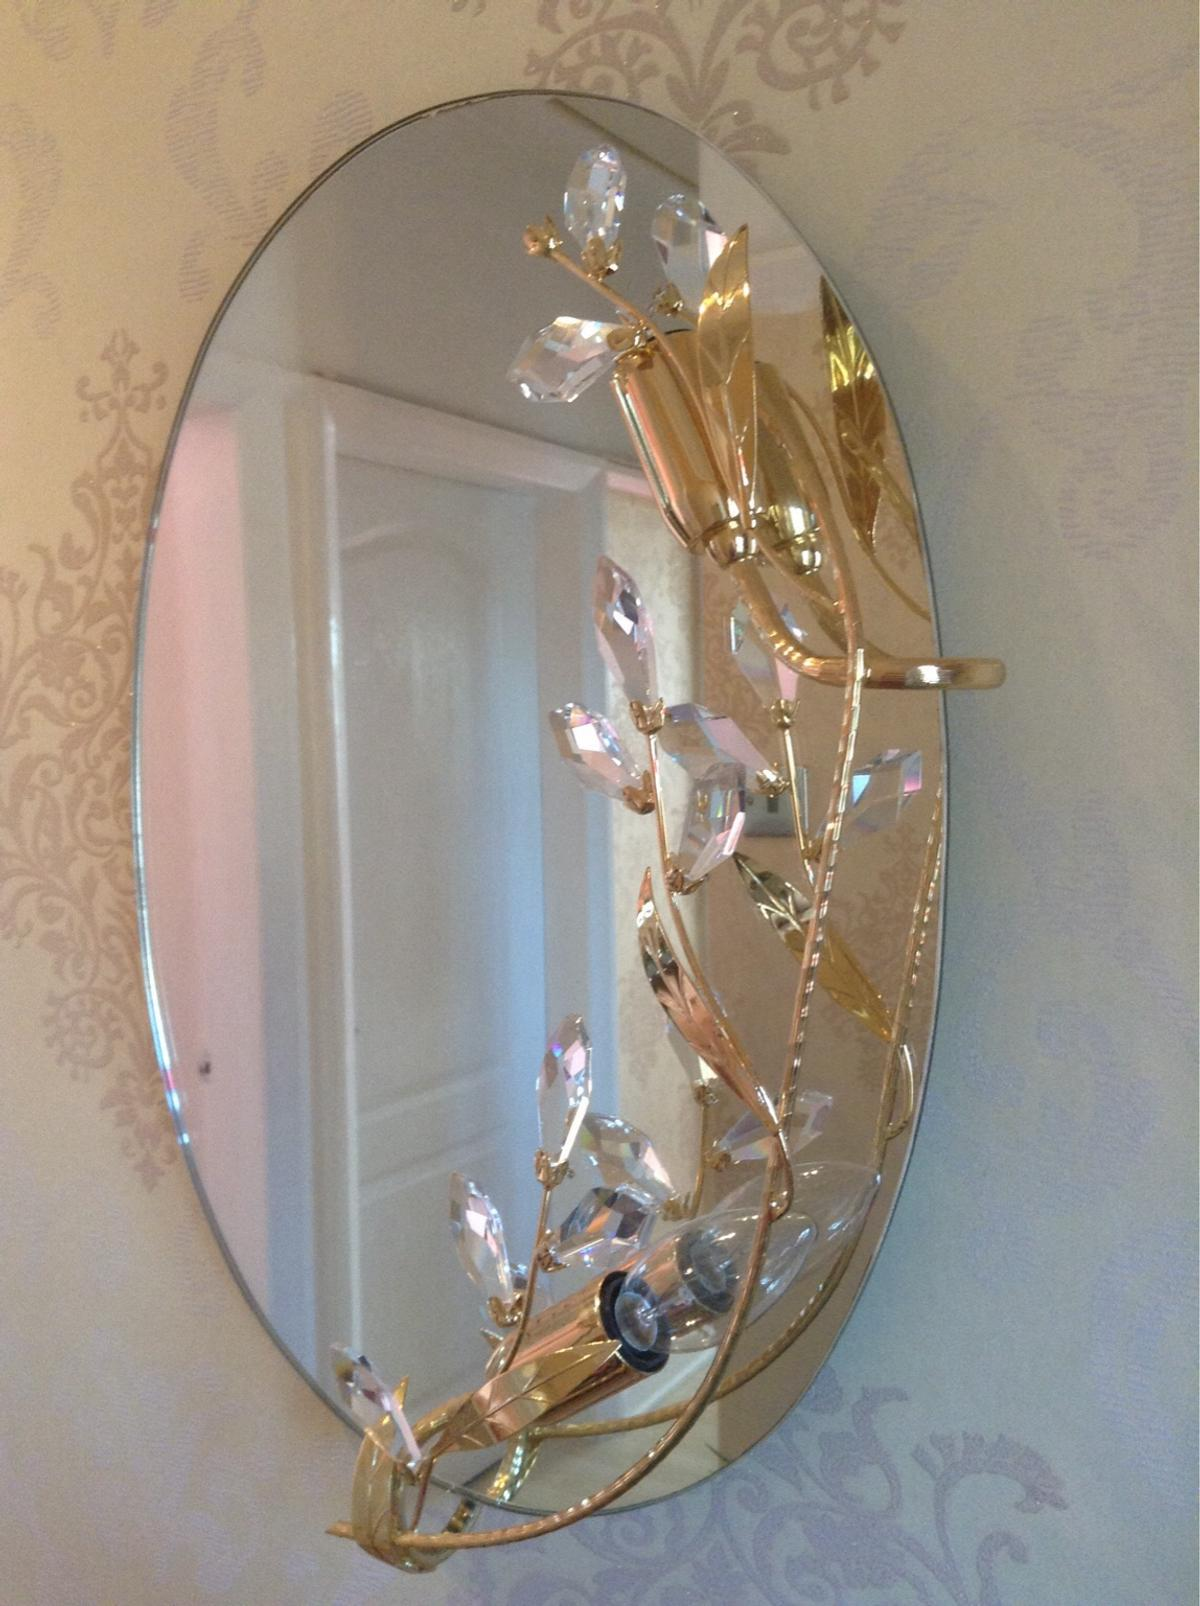 Beutifull ovel mirror with Cristles also it takes 2 bulbs it measures. Hight 181/2 ins with is 13ins at the centre also Gold Edging to one side